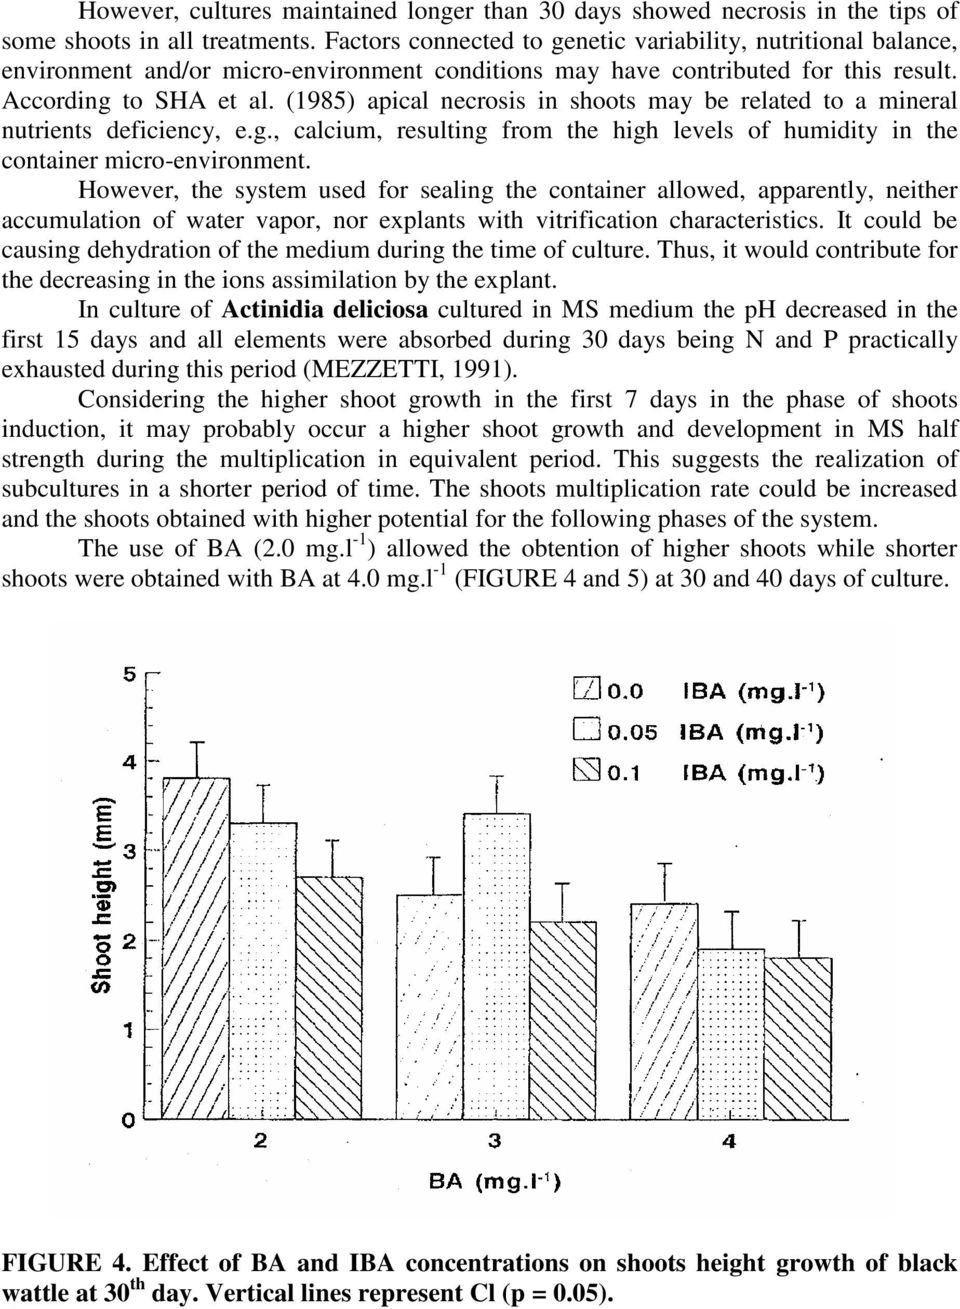 (1985) apical necrosis in shoots may be related to a mineral nutrients deficiency, e.g., calcium, resulting from the high levels of humidity in the container micro-environment.